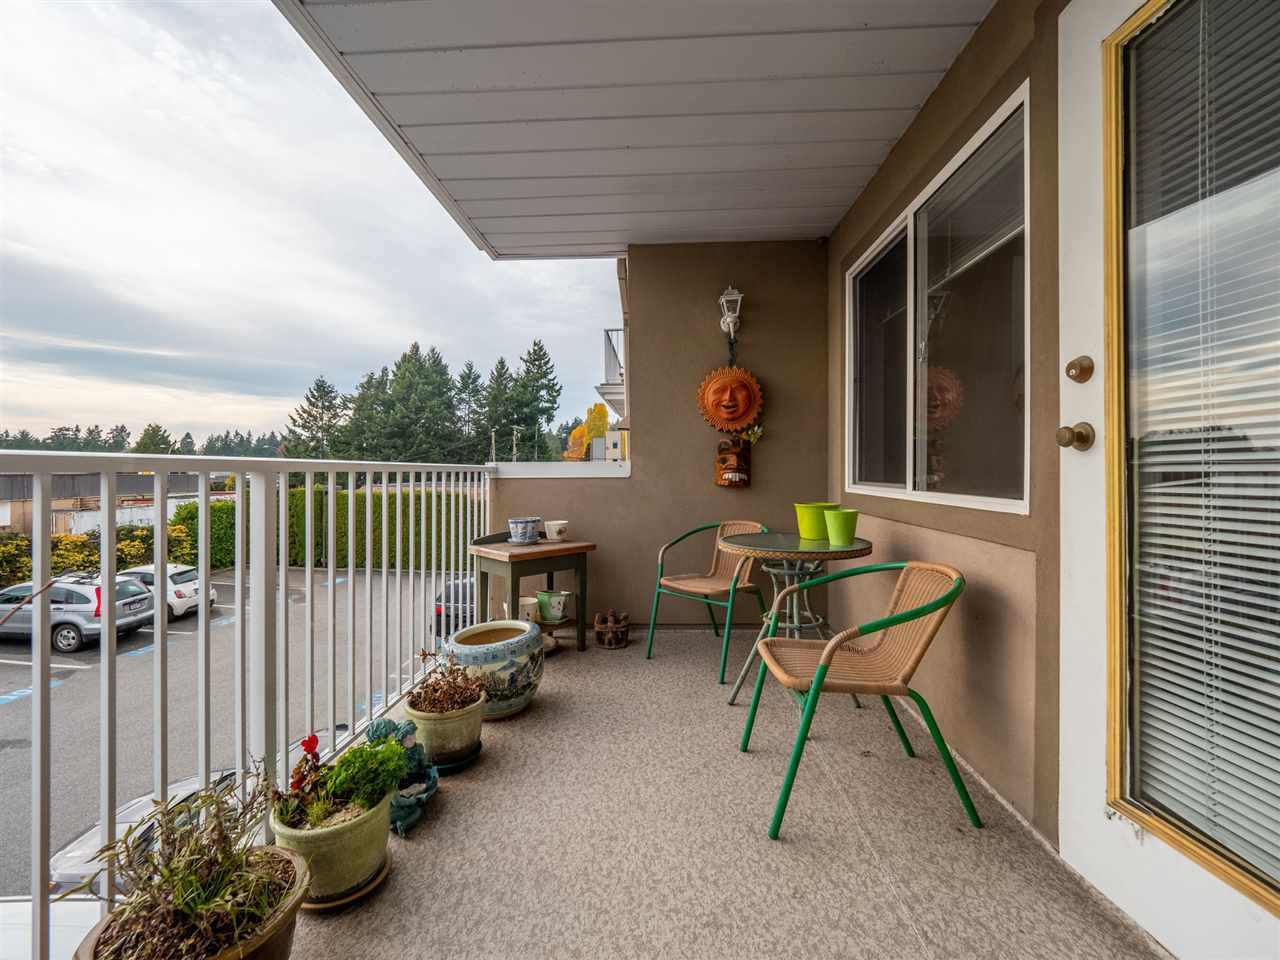 Photo 17: Photos: 206 5711 MERMAID Street in Sechelt: Sechelt District Condo for sale (Sunshine Coast)  : MLS®# R2419059